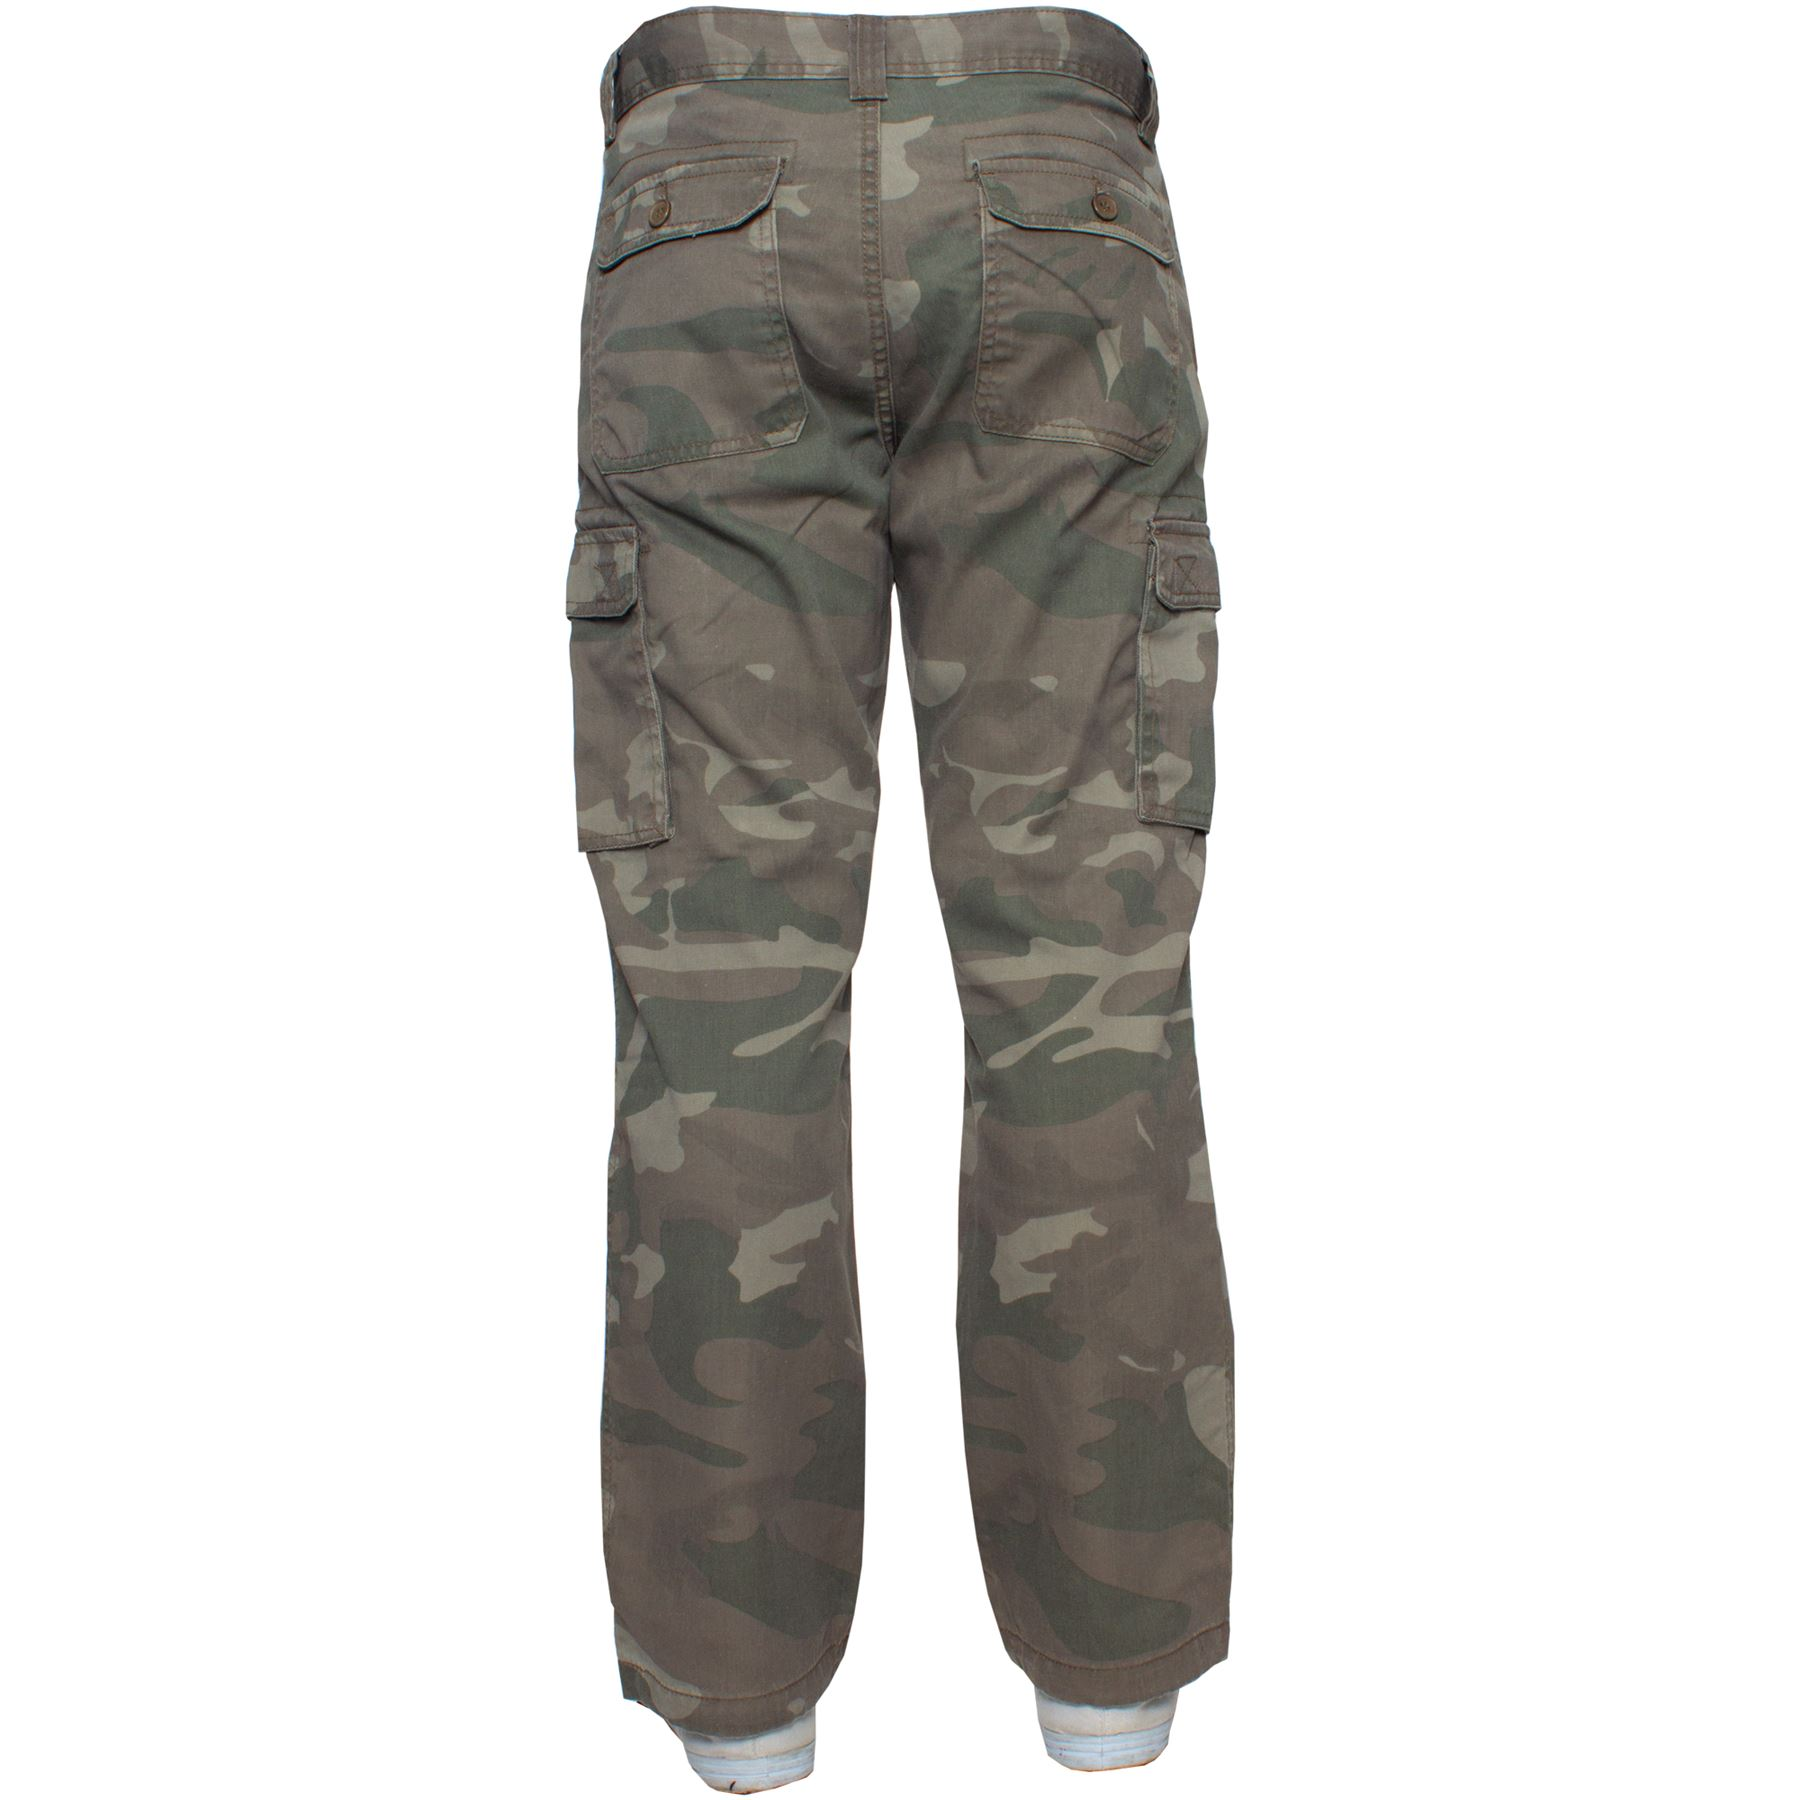 Kruze-Mens-Military-Combat-Trousers-Camouflage-Cargo-Camo-Army-Casual-Work-Pants thumbnail 29